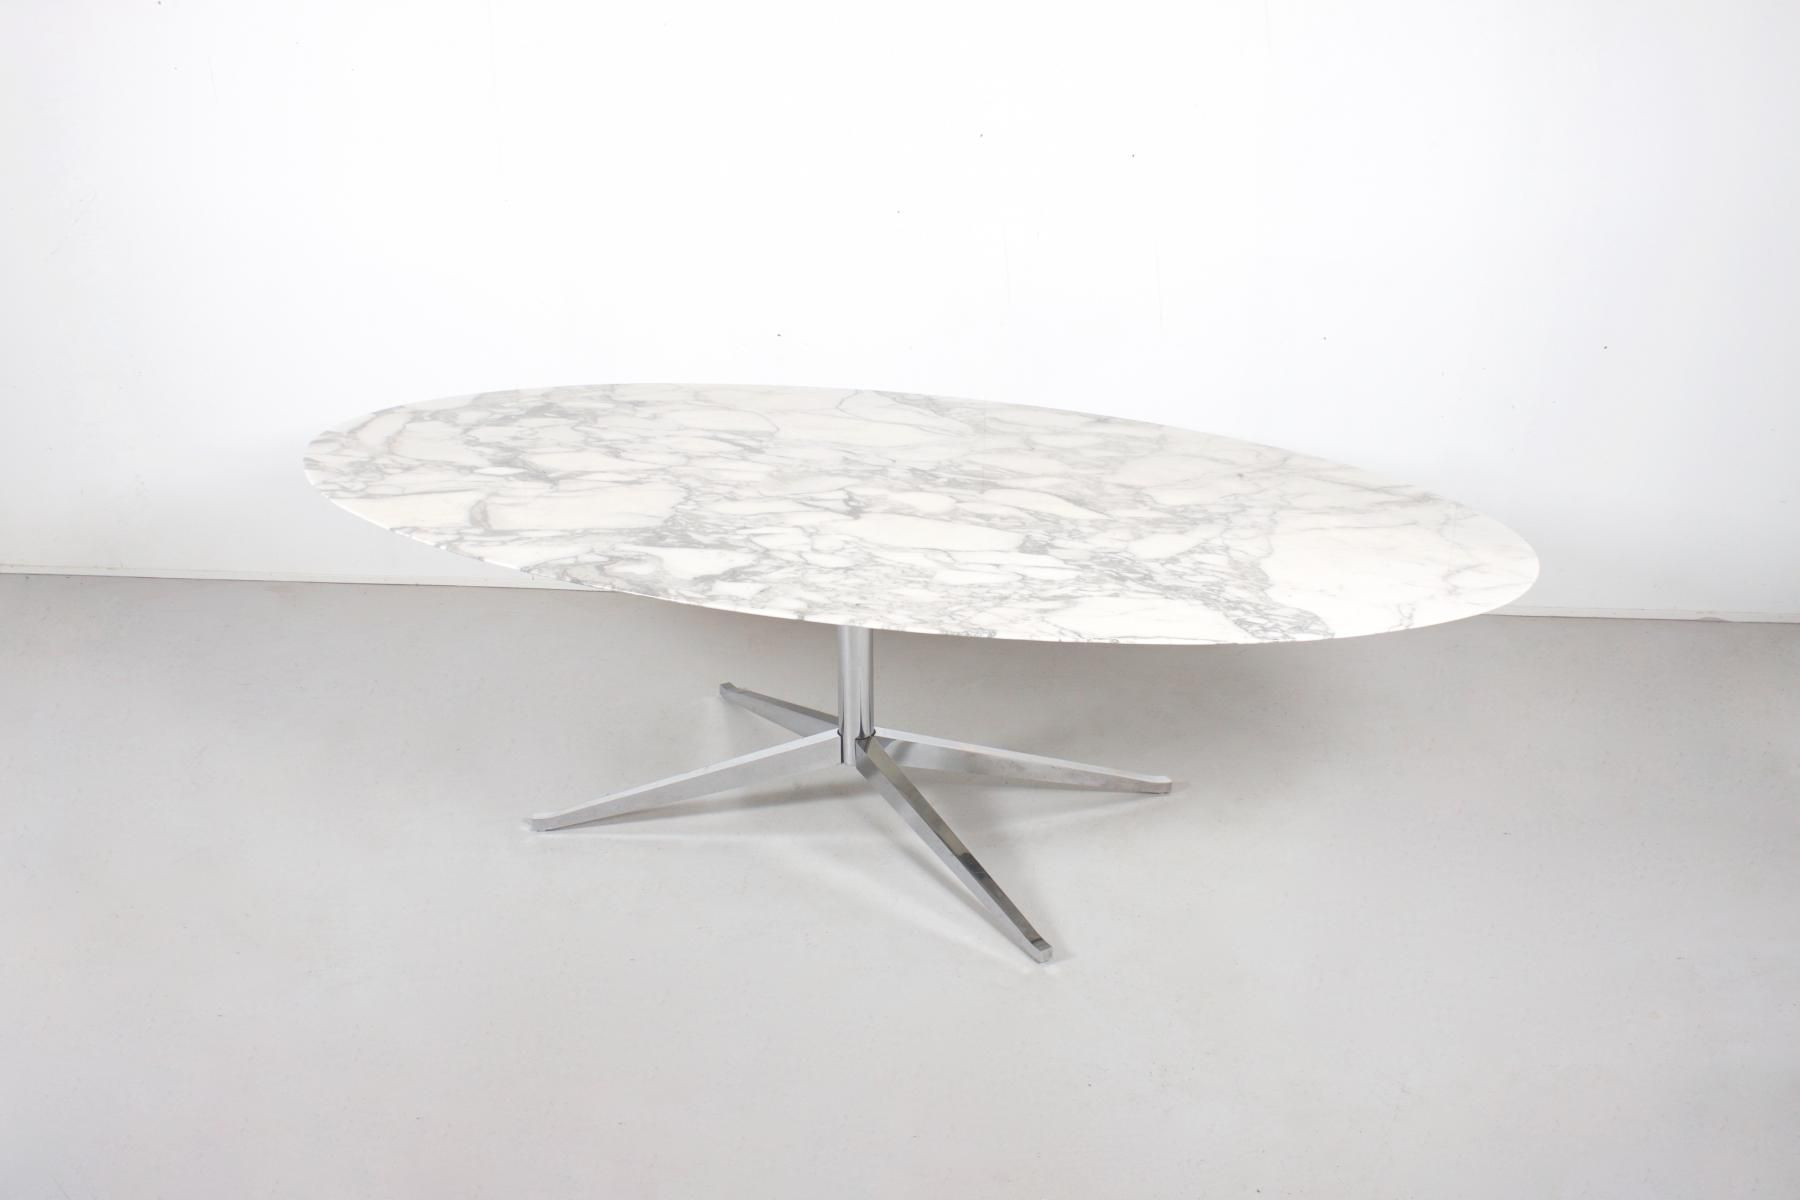 Table De Salle A Manger Ovale 2480 En Marbre Par Florence Knoll Pour Knoll International 1961 1 Table Salle A Manger Table Marbre Table Knoll Ovale